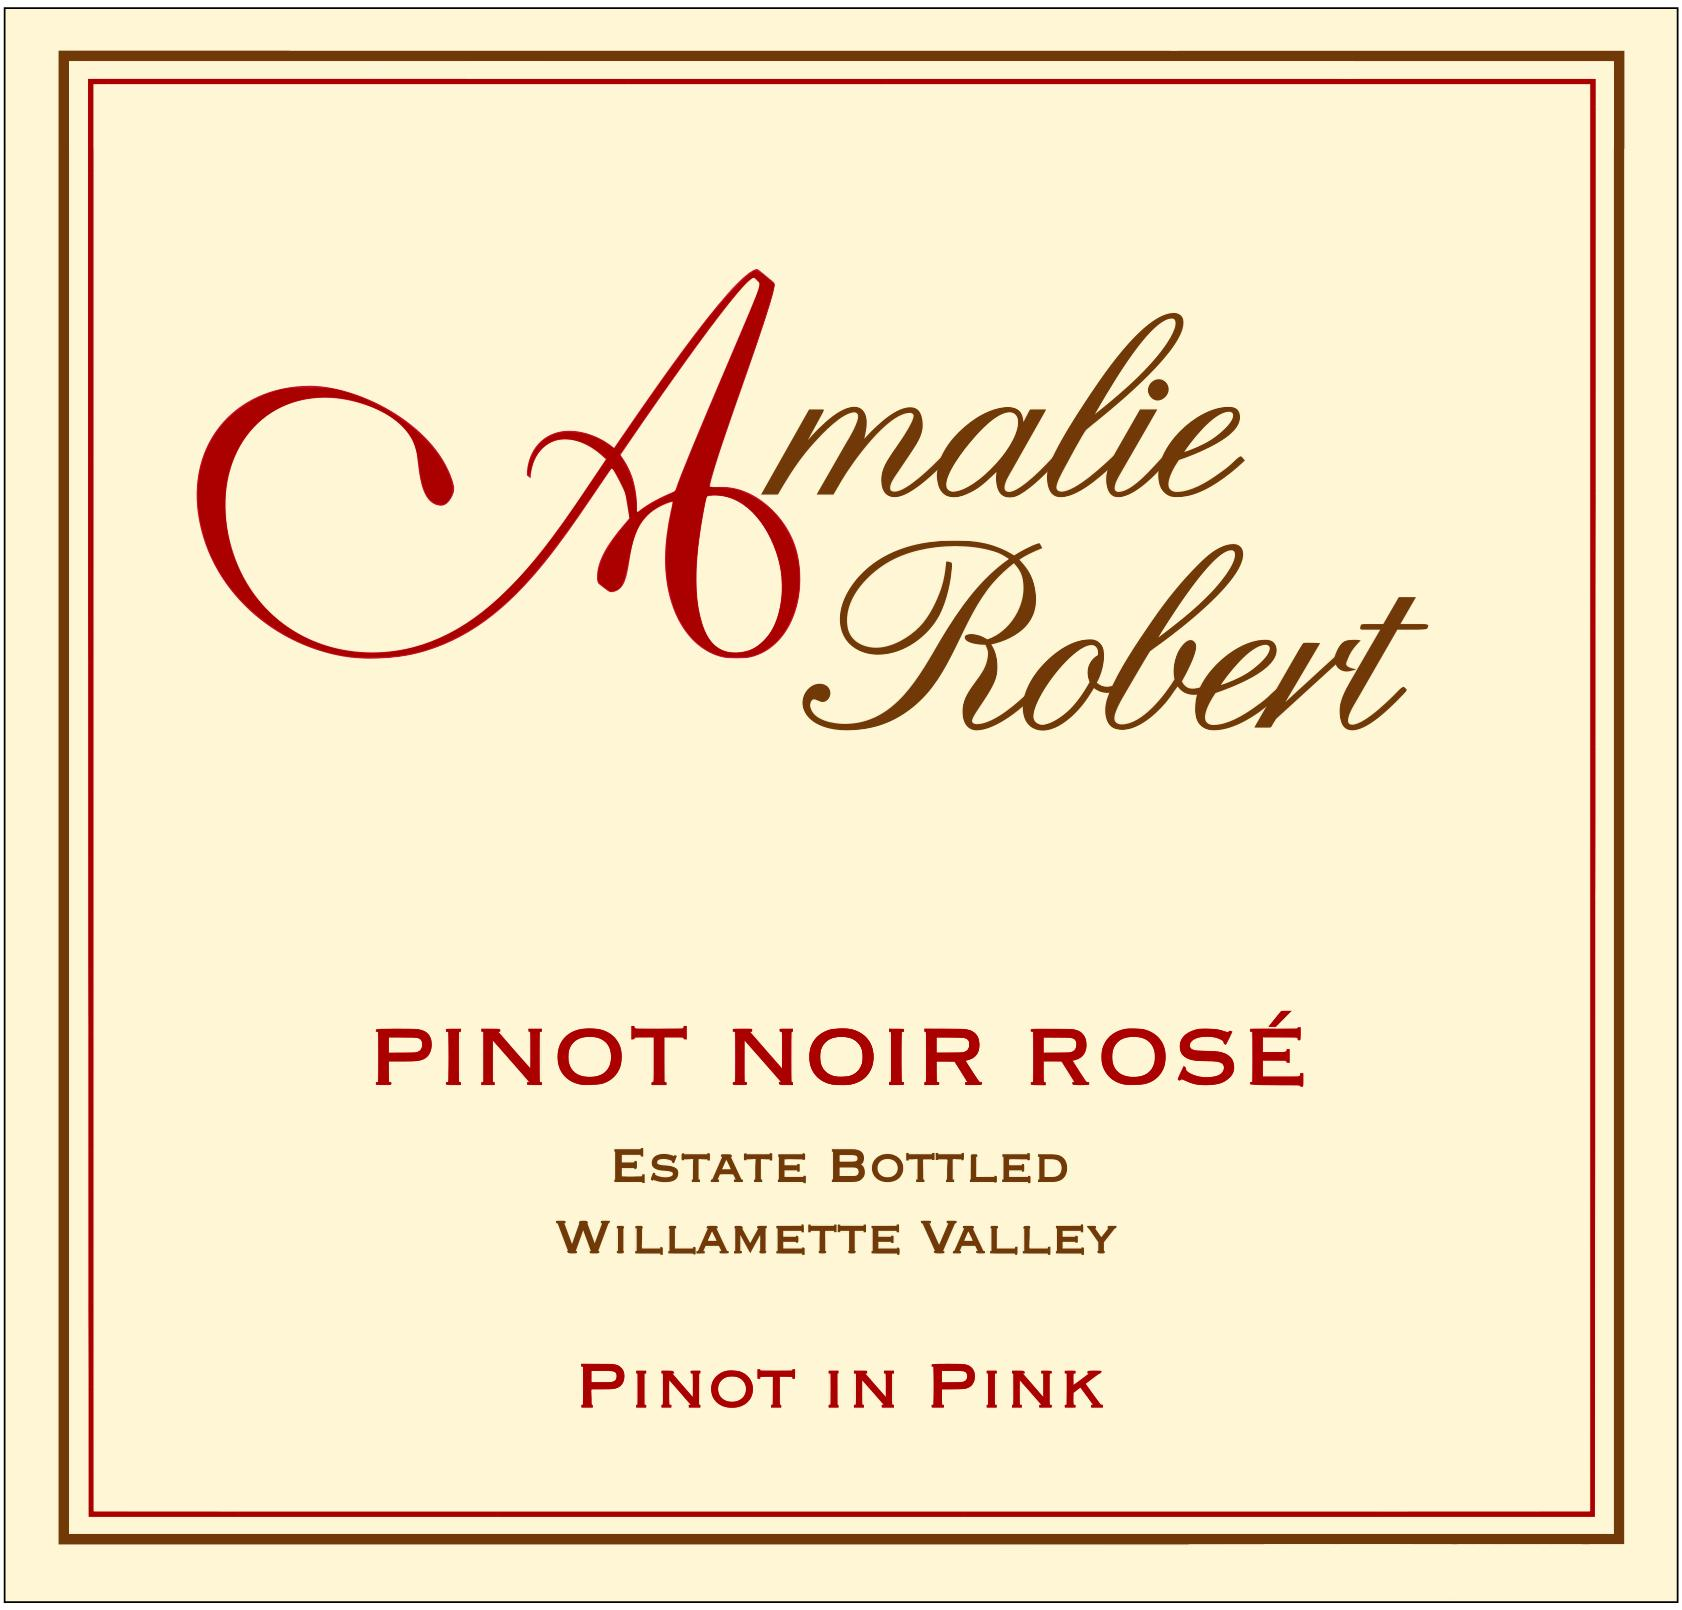 2017 Pinot in Pink - Pinot Noir Rose